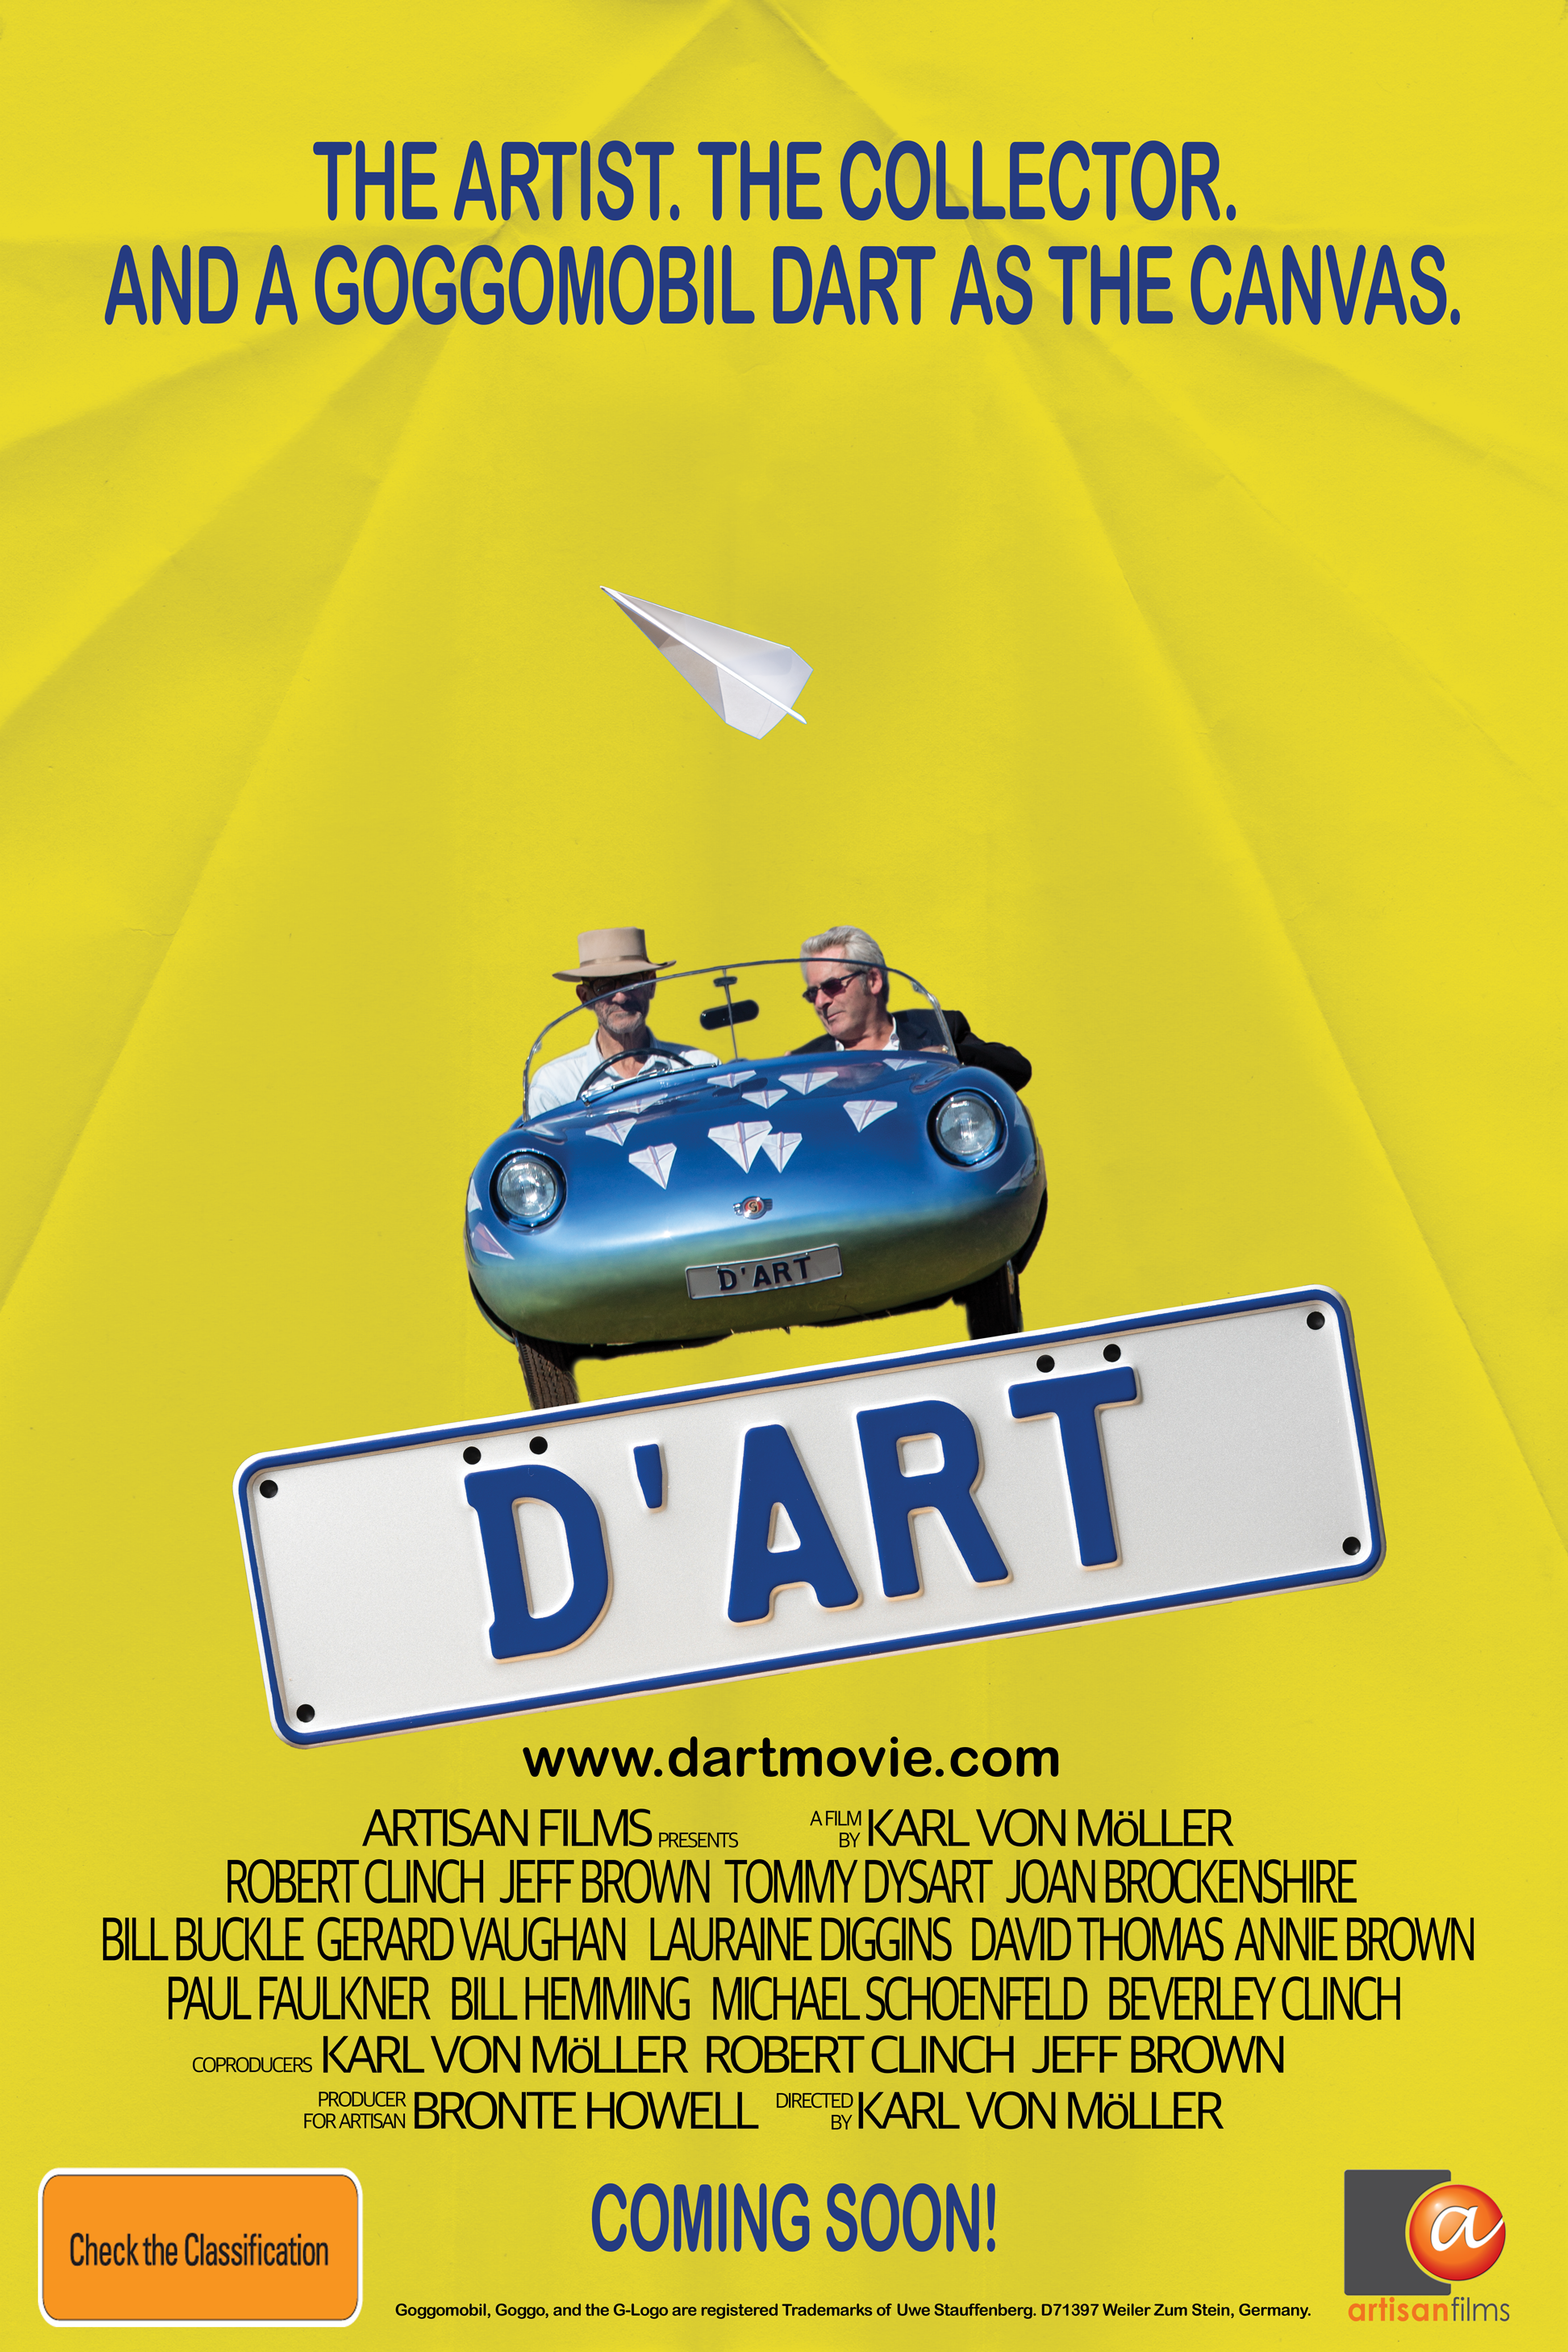 New documentary D'art premieres in Sydney and Melbourne ~ film built around famous Yellow Pages 'Goggomobil' TV commercial from the 90s